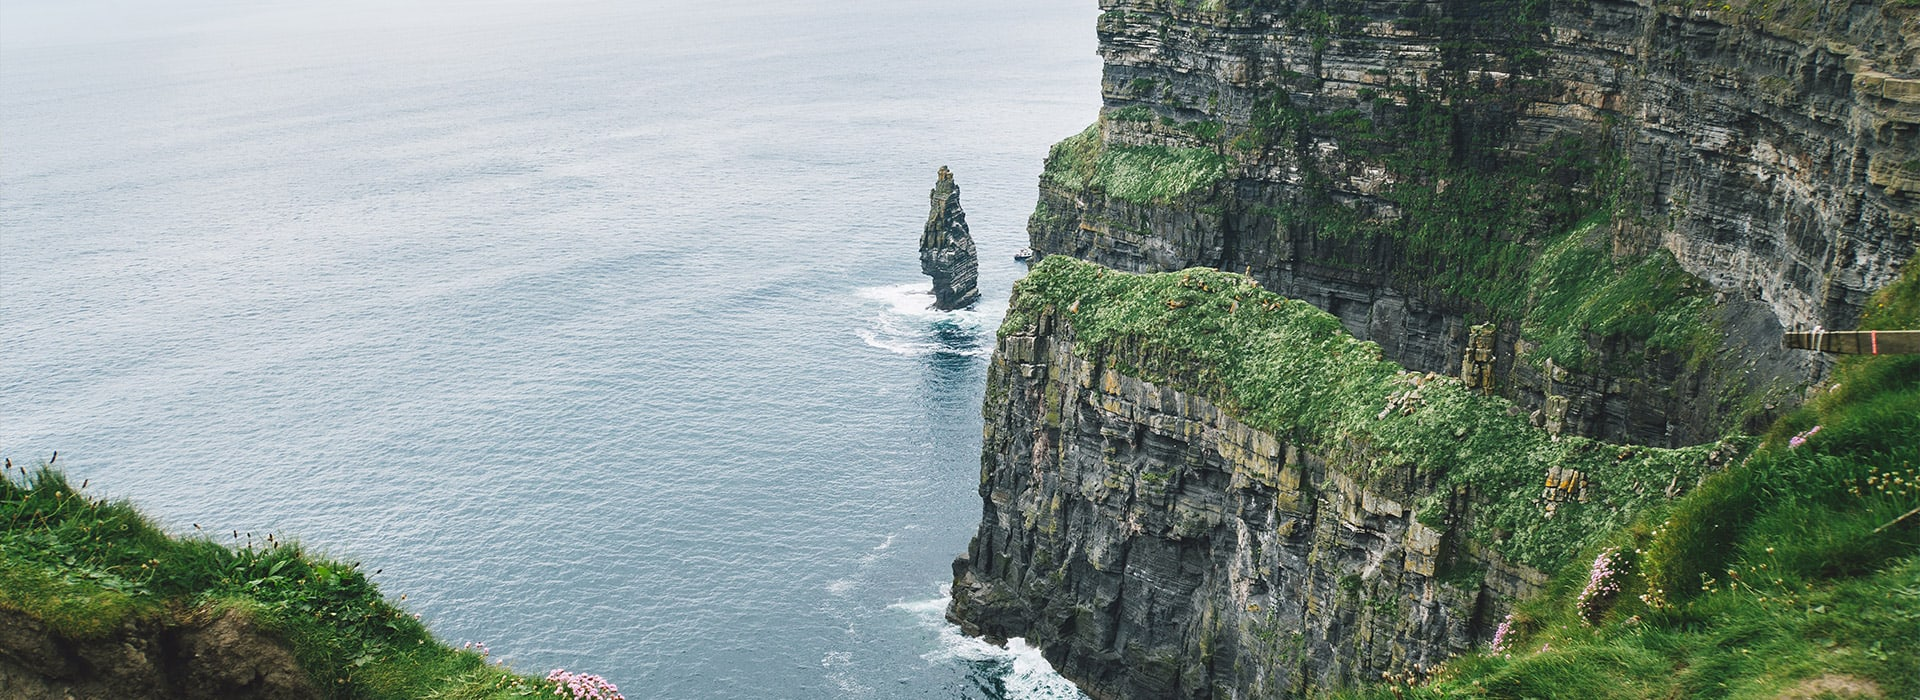 Nord-West-Irland, Boot, Hausboot